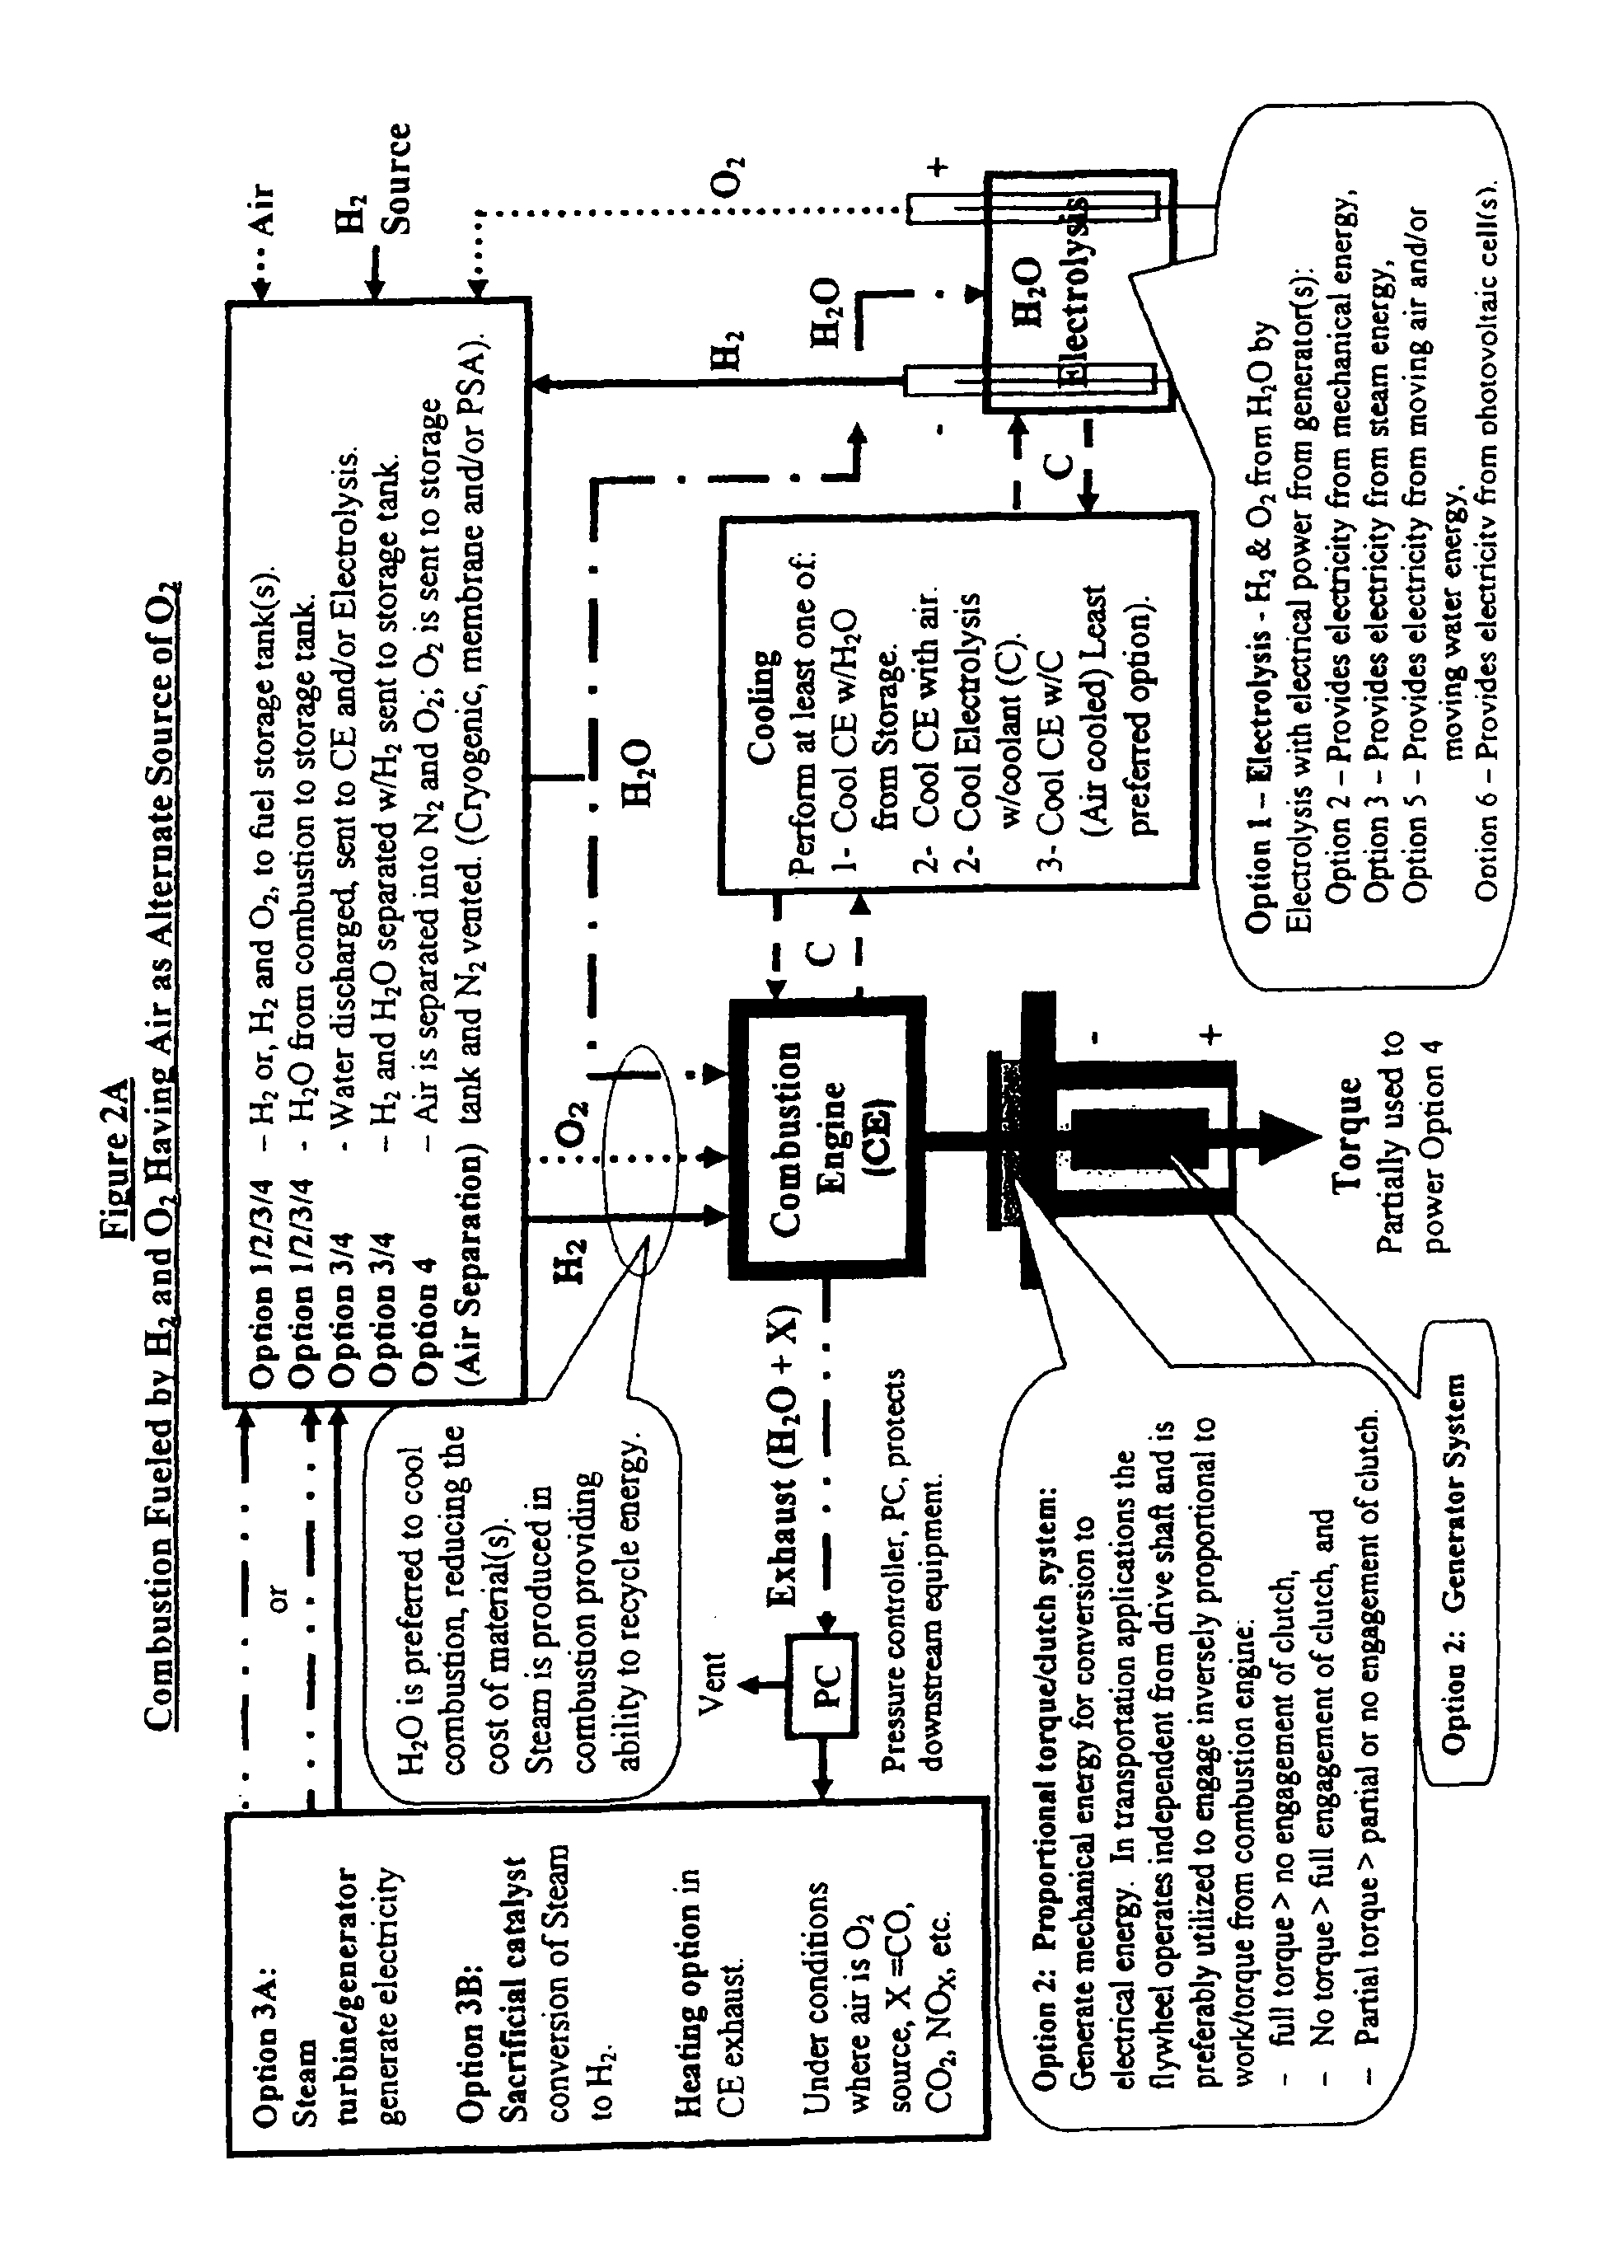 Patent US Water bustion technology—methods processes